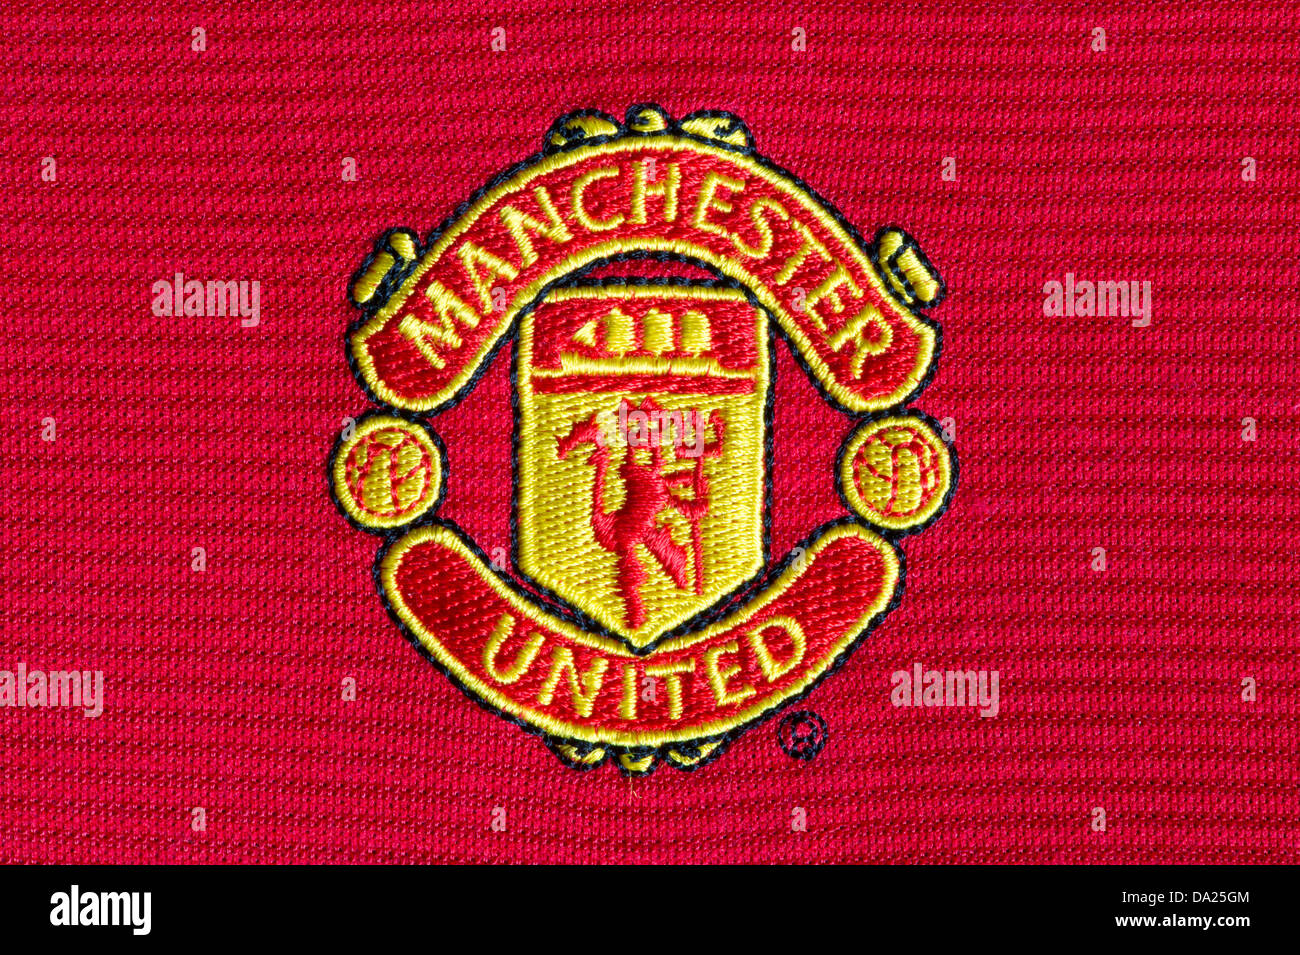 The Manchester United Football Club badge as seen on a playing jersey (Editorial use only). - Stock Image